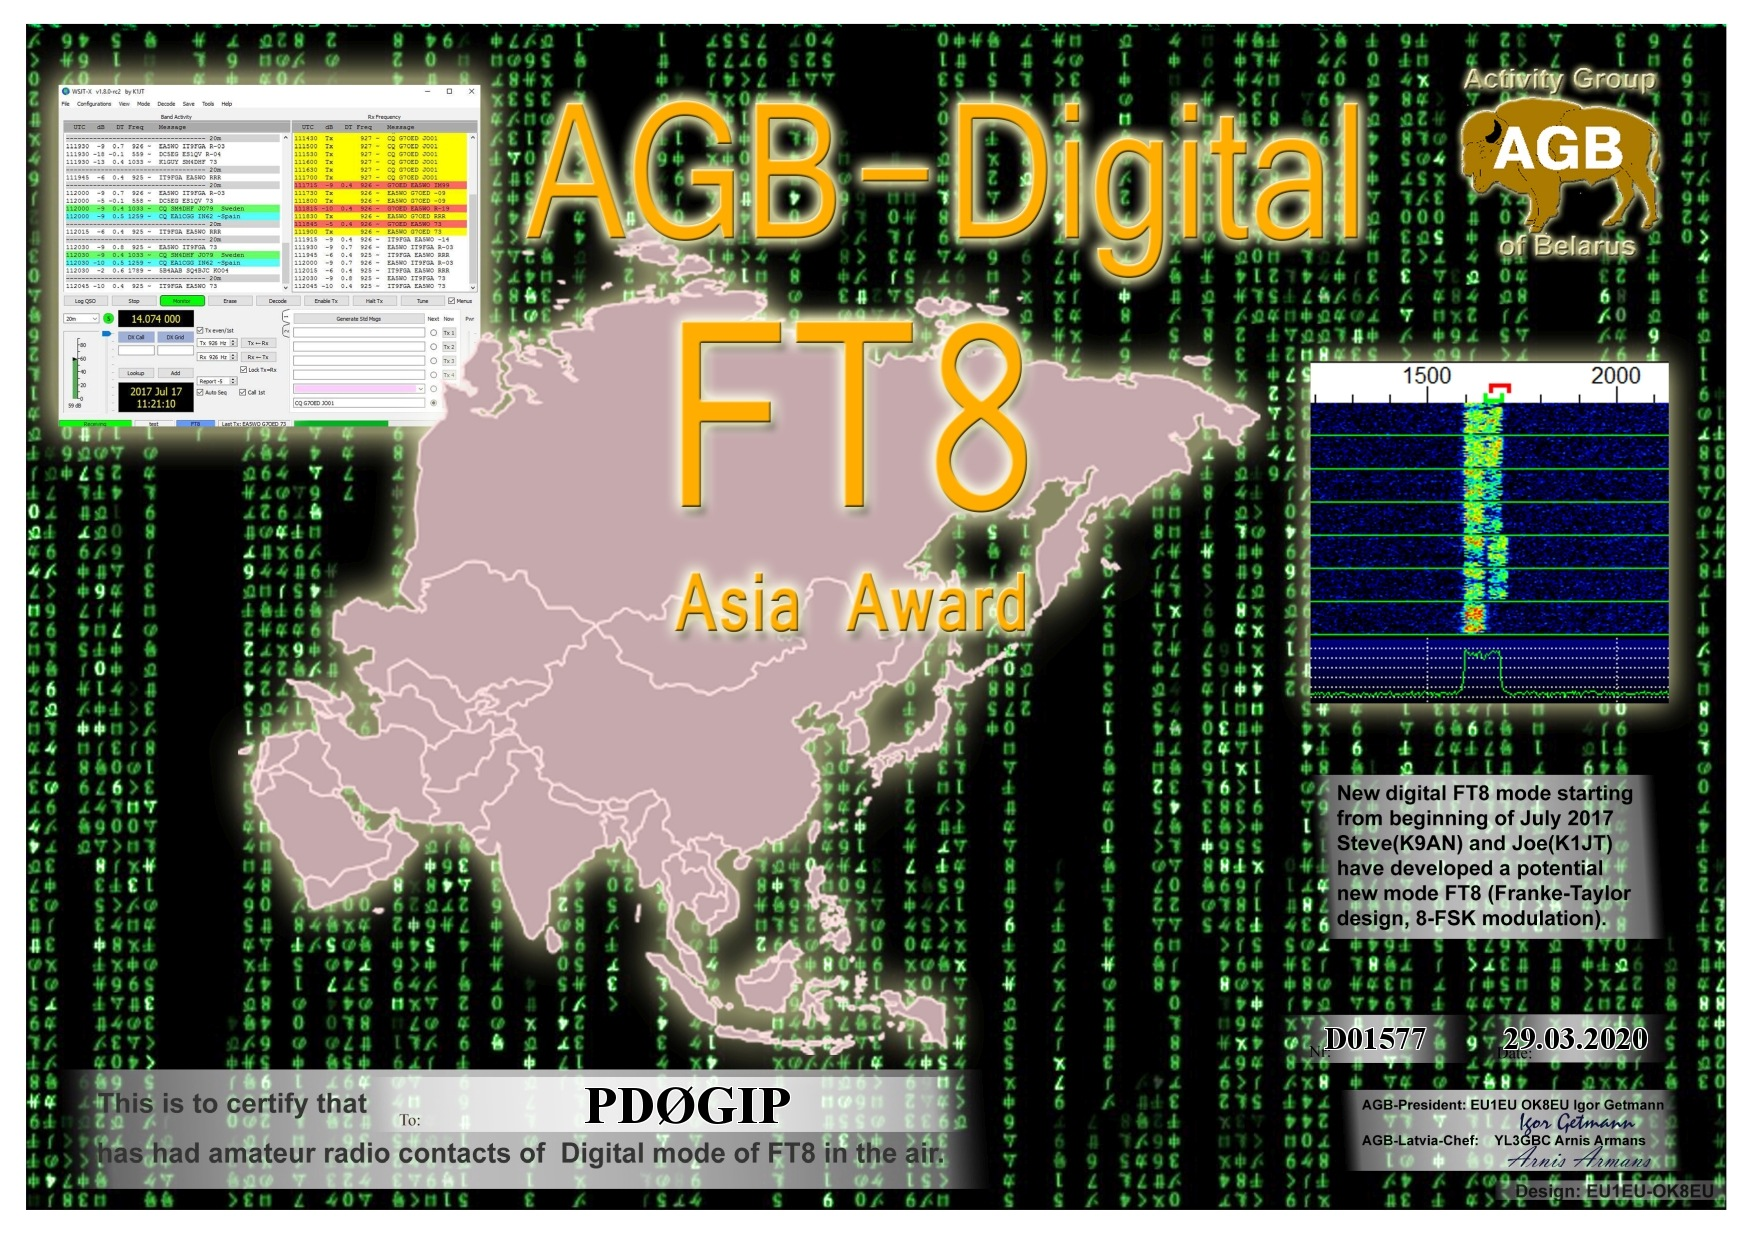 PD0GIP FT8 ASIA BASIC AGB